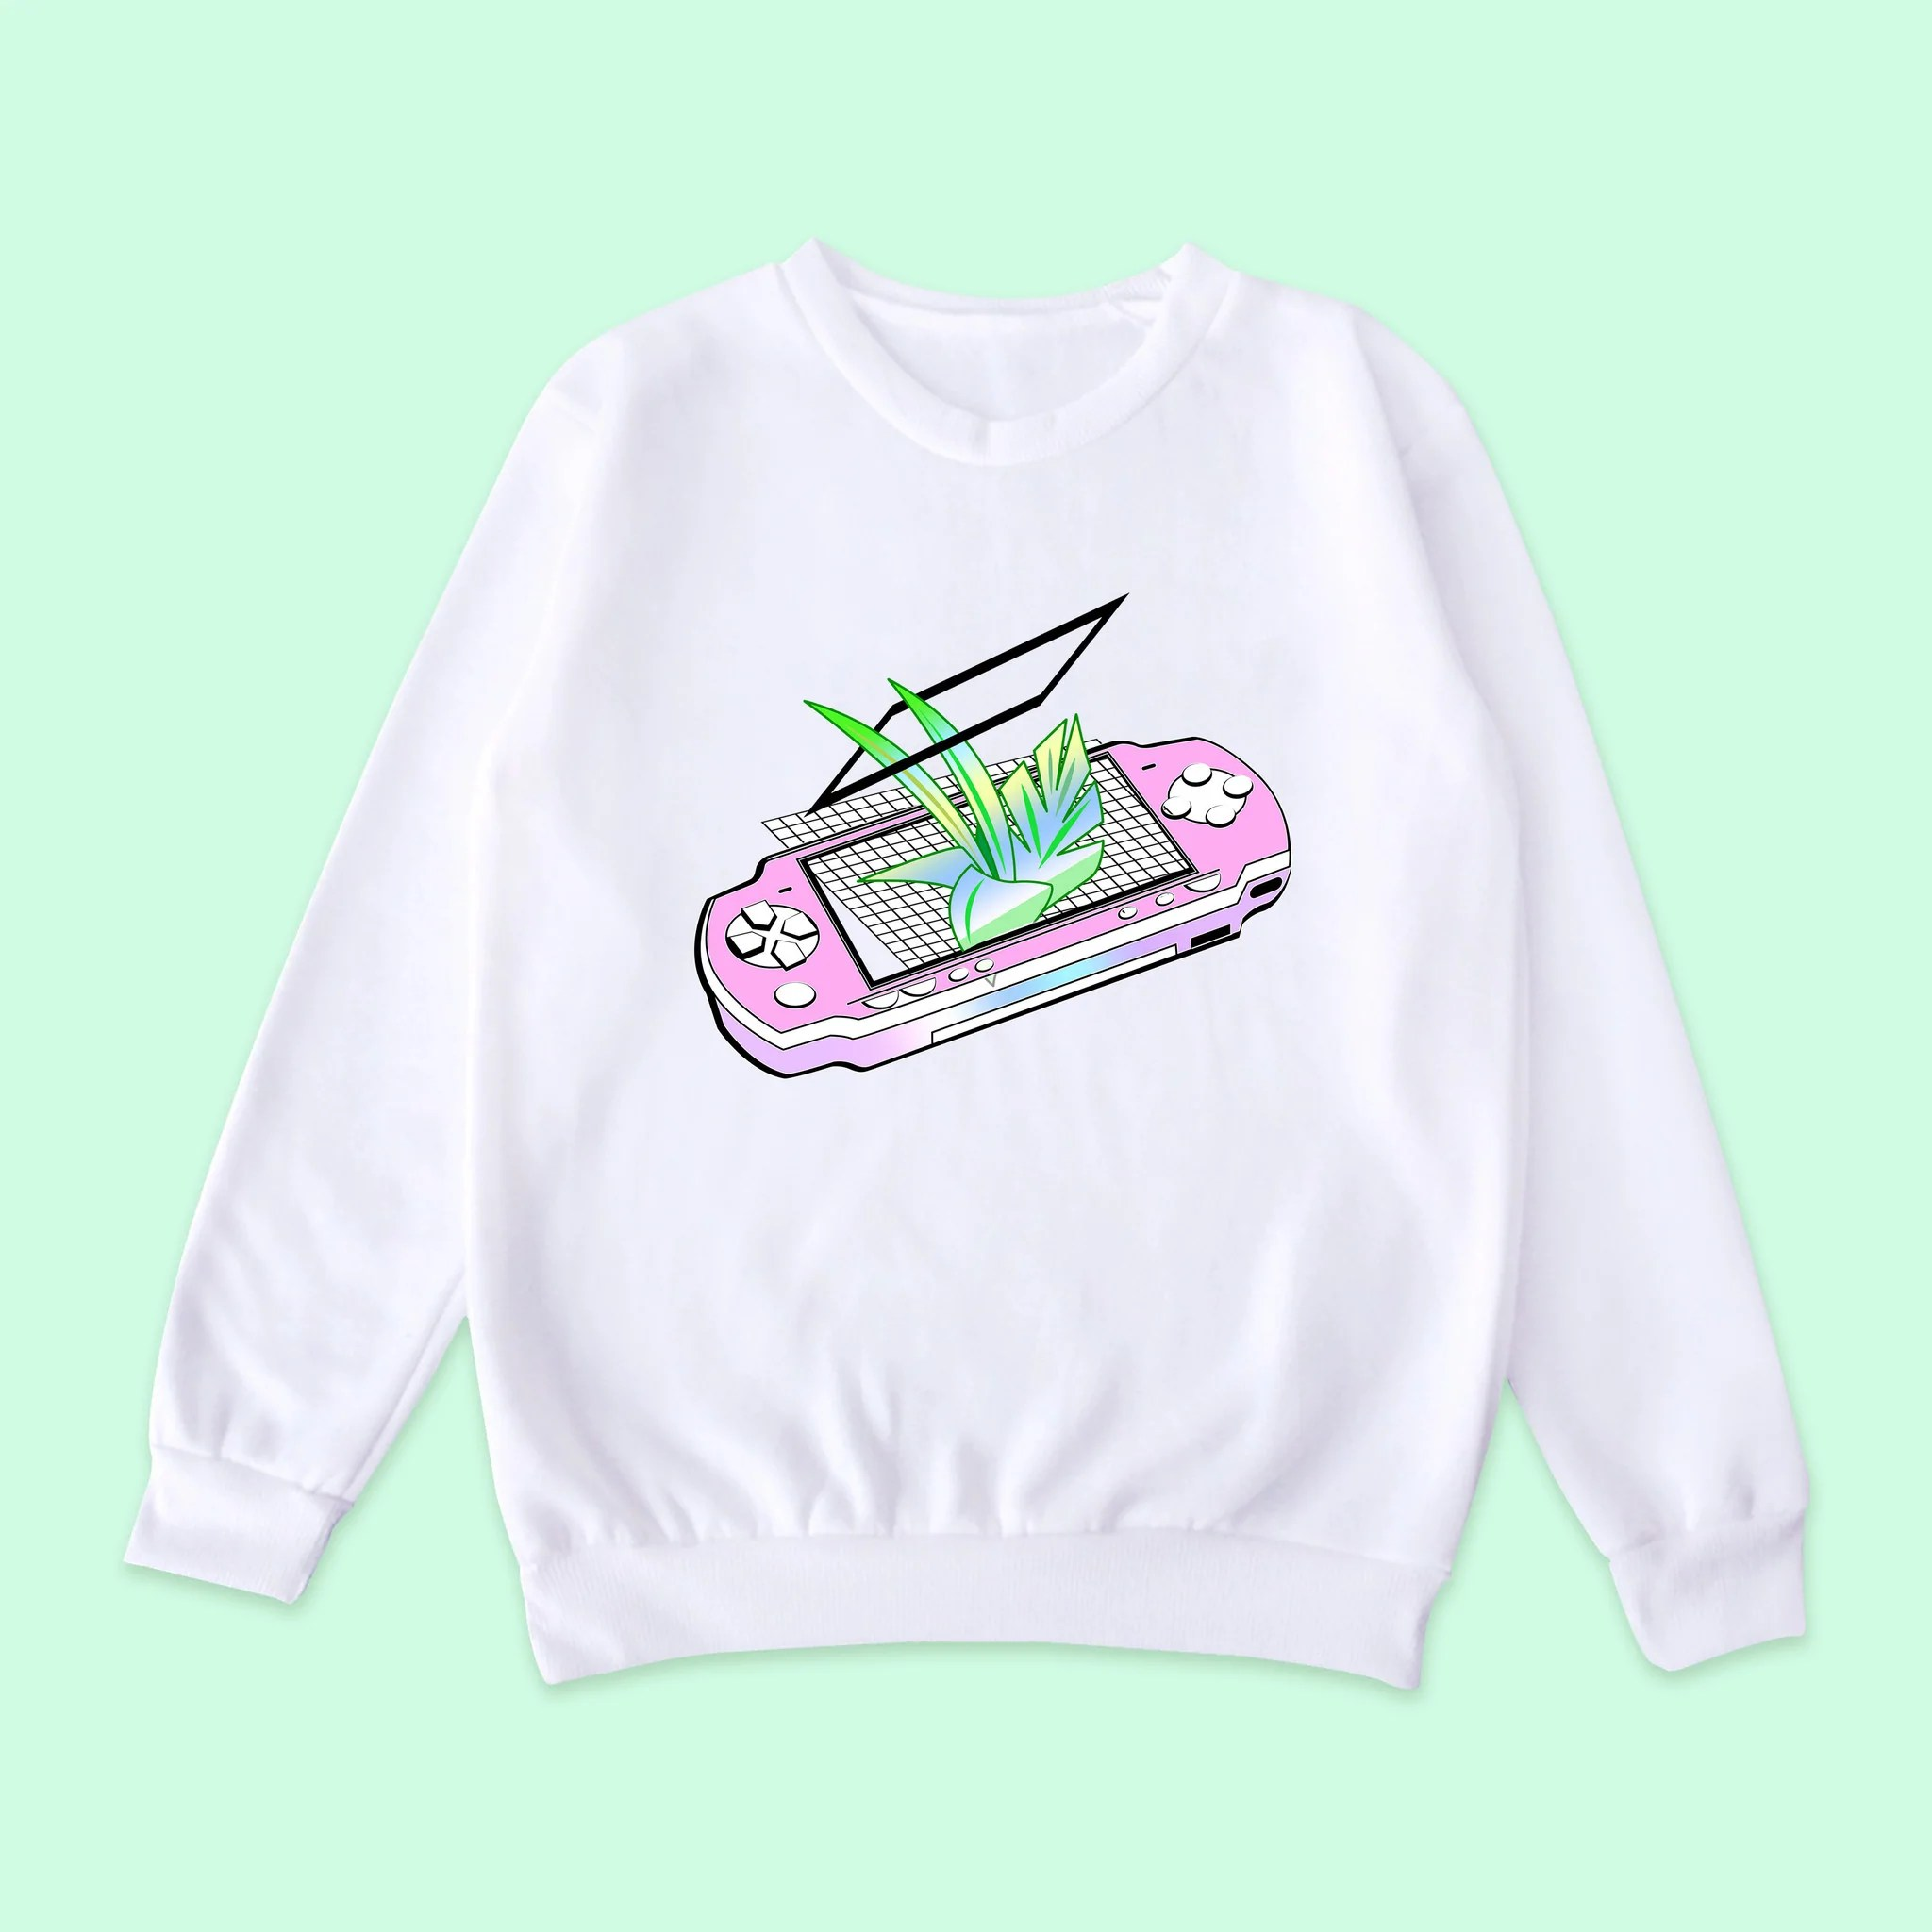 Aliens Cute Wallpaper Vaporwave Tumblr Aesthetic Psp Jumper Kokopiecoco